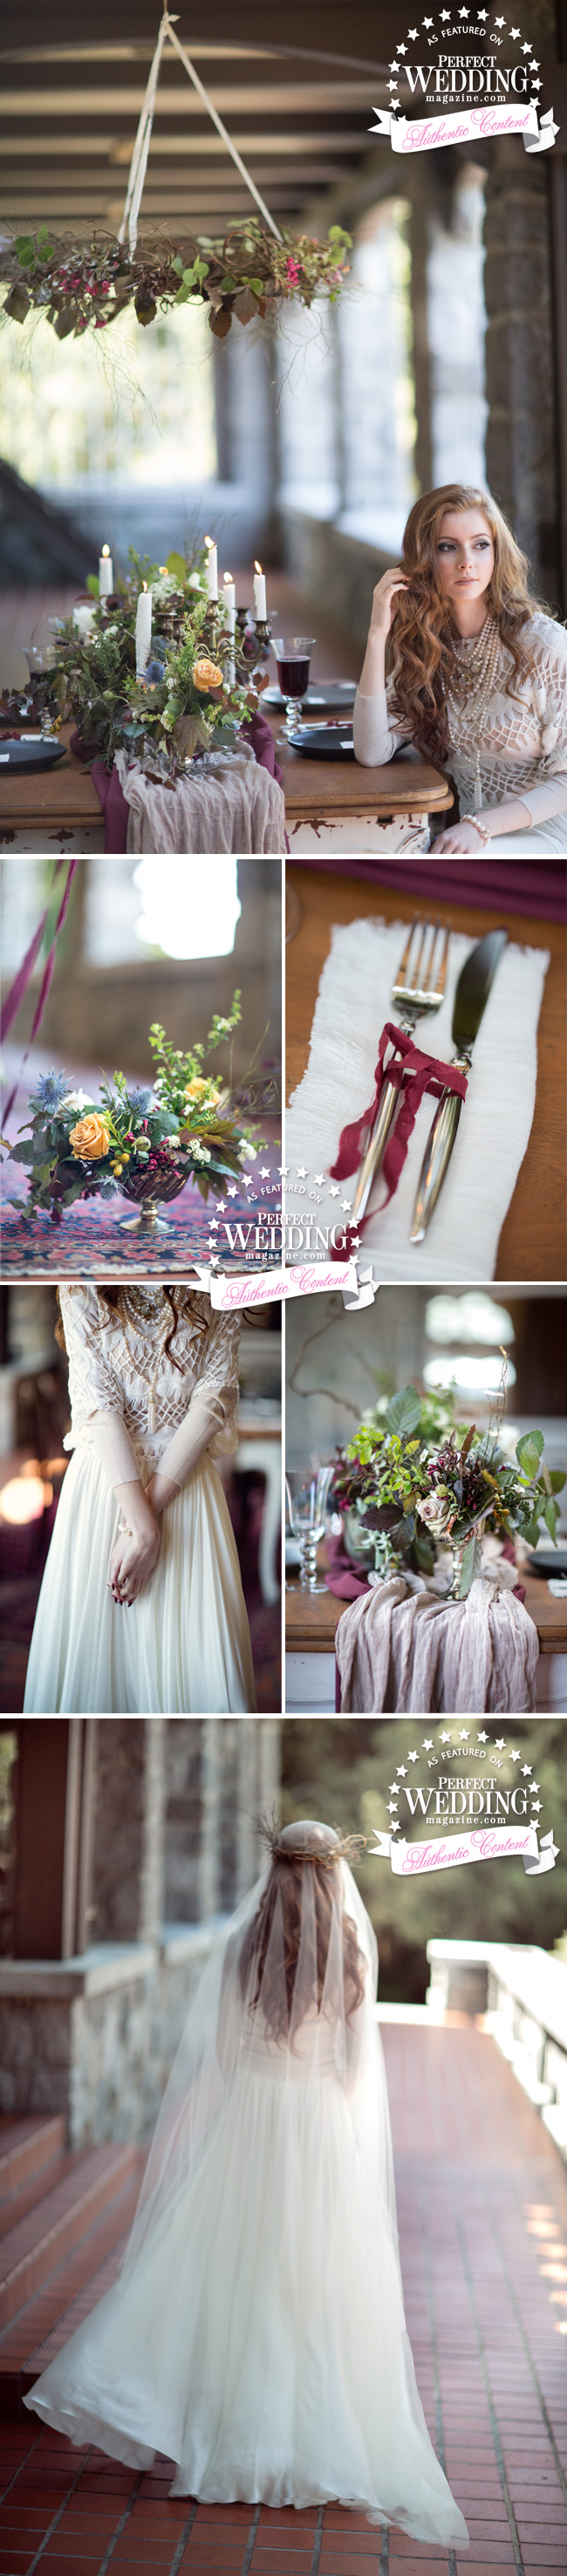 Solstice Covenant, celebrate a newness, Winter Solstice, Winter Wedding, Winter Decor, Winter Floral, Perfect Wedding Magazine, Kingdom of Lovers, Maru photography, Reem Acra, Blush Bridal, Winter Ideas for Wedding Decor